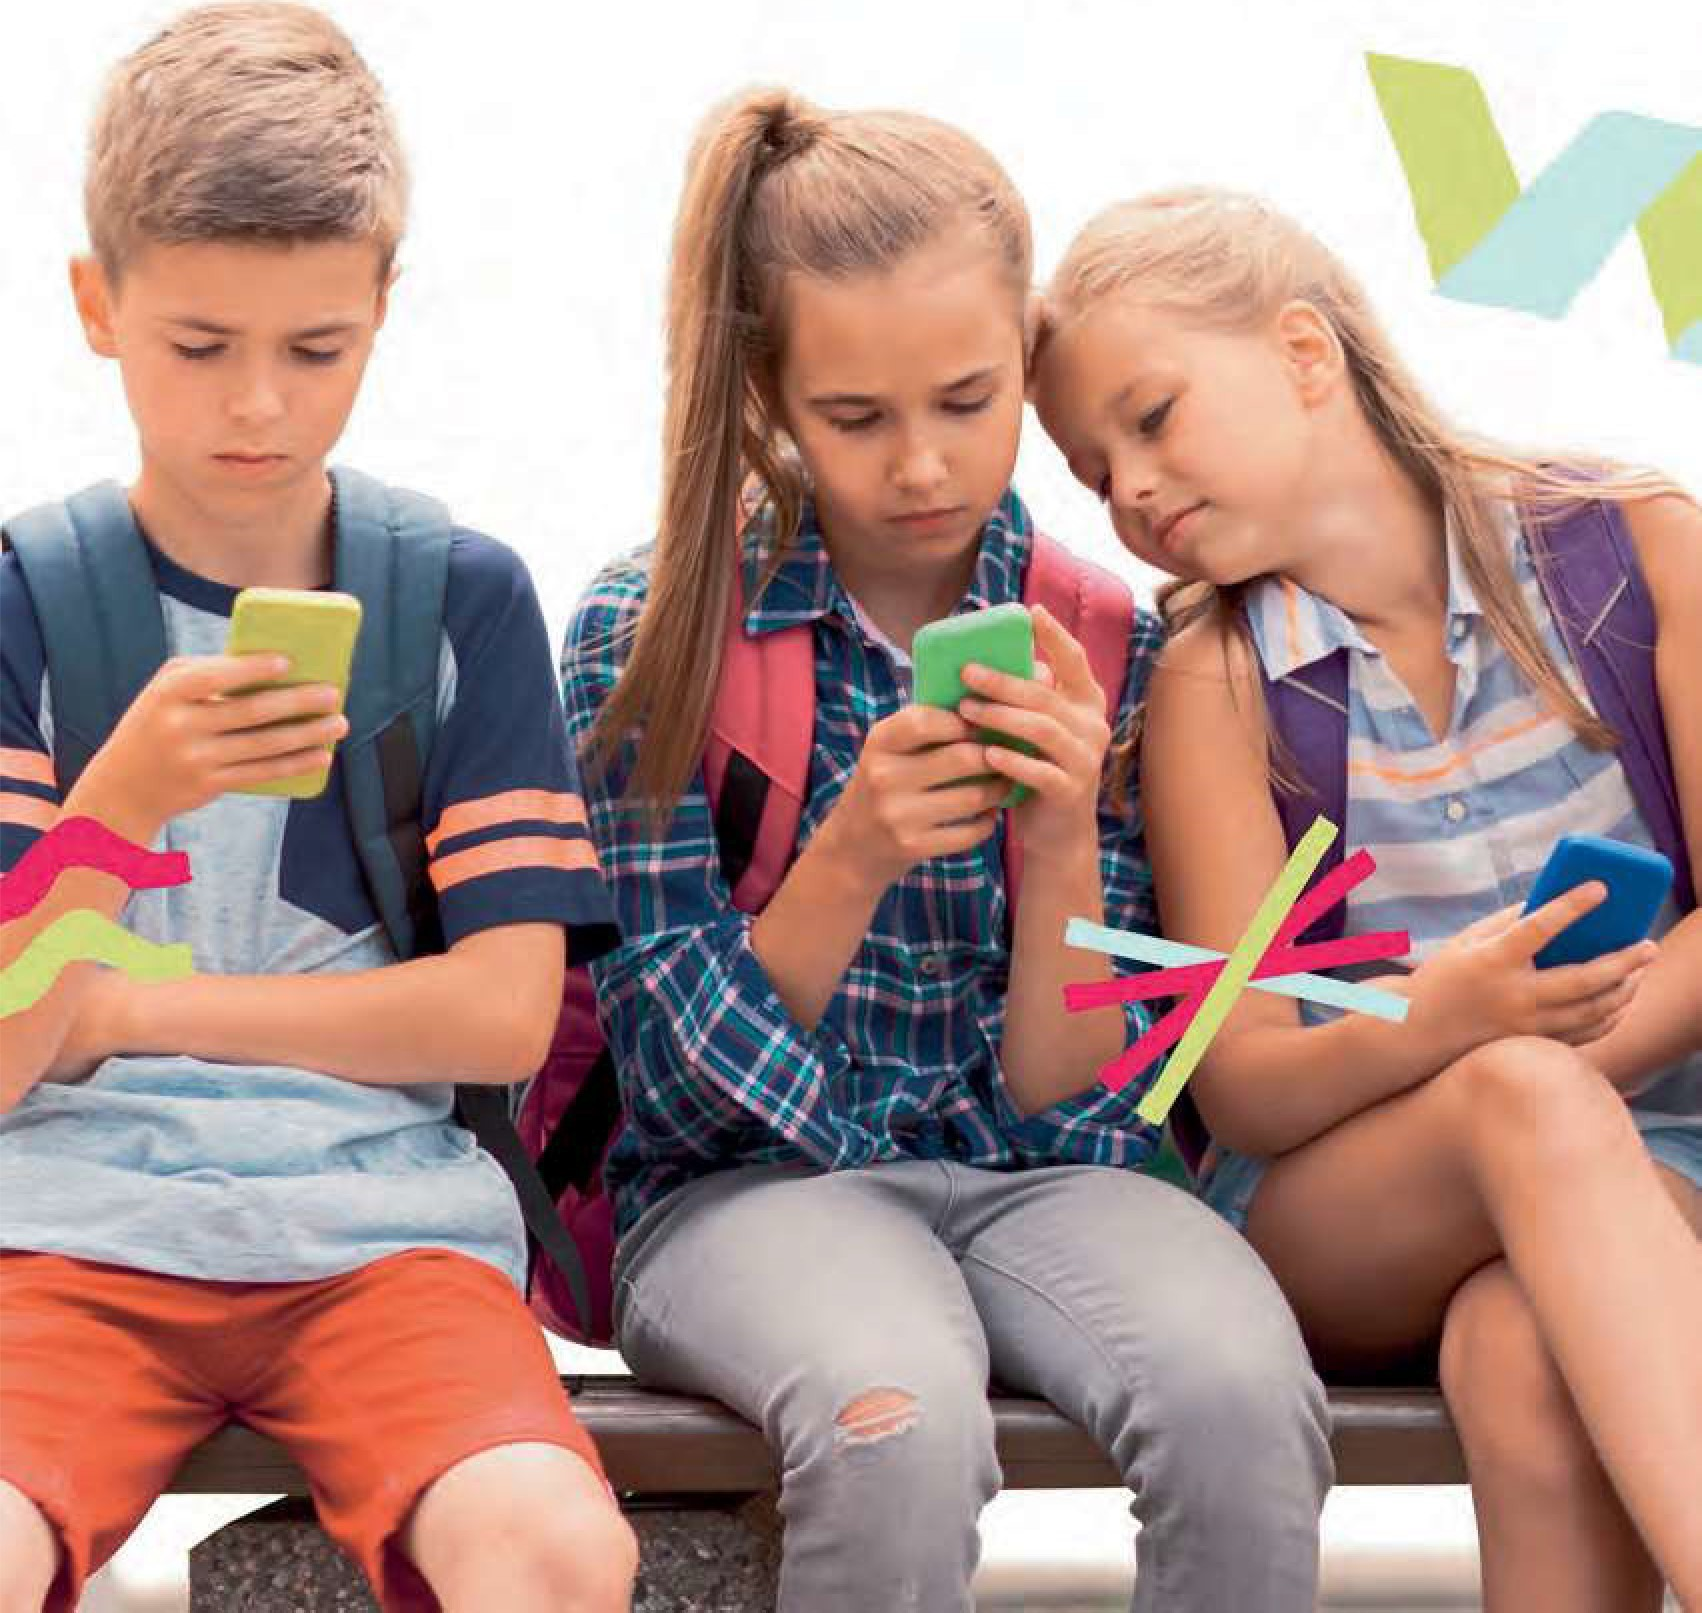 Image for <B>Growing Up Healthy in a World of Digital Media </B><I> </I>